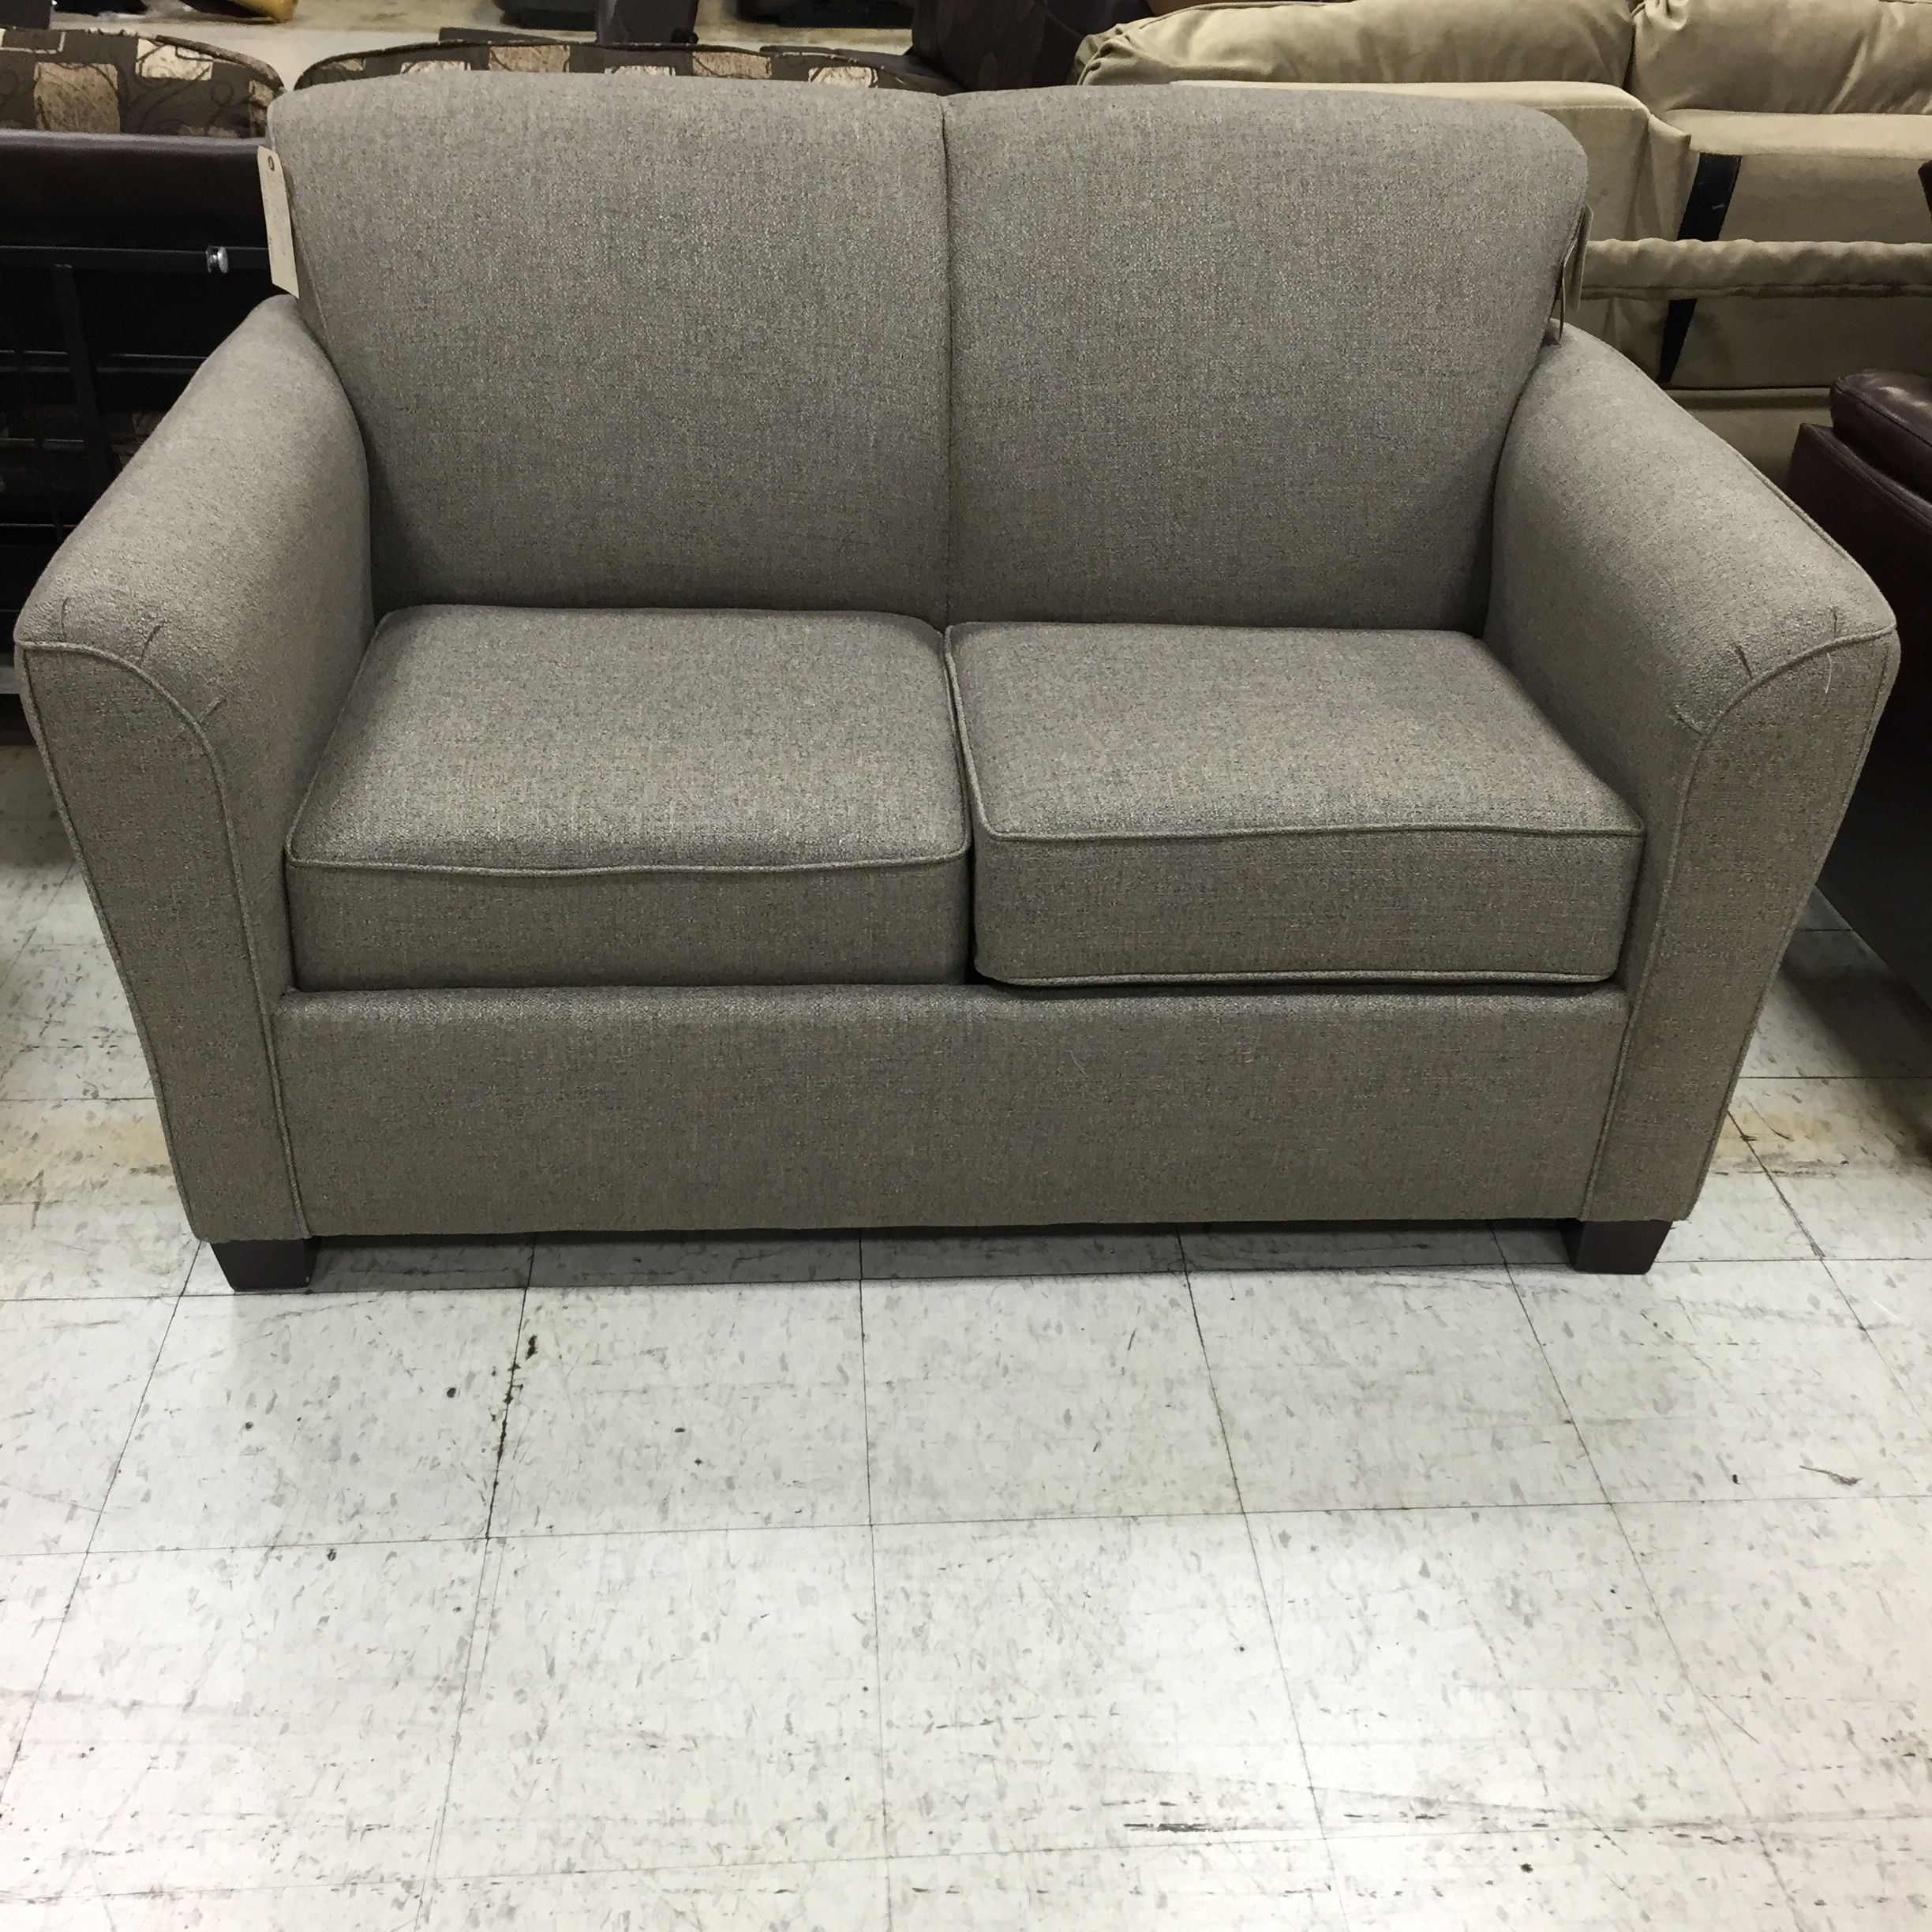 58 Cloth Sleeper Sofa Manufactured By Lazy Boy Lazyboy Rv